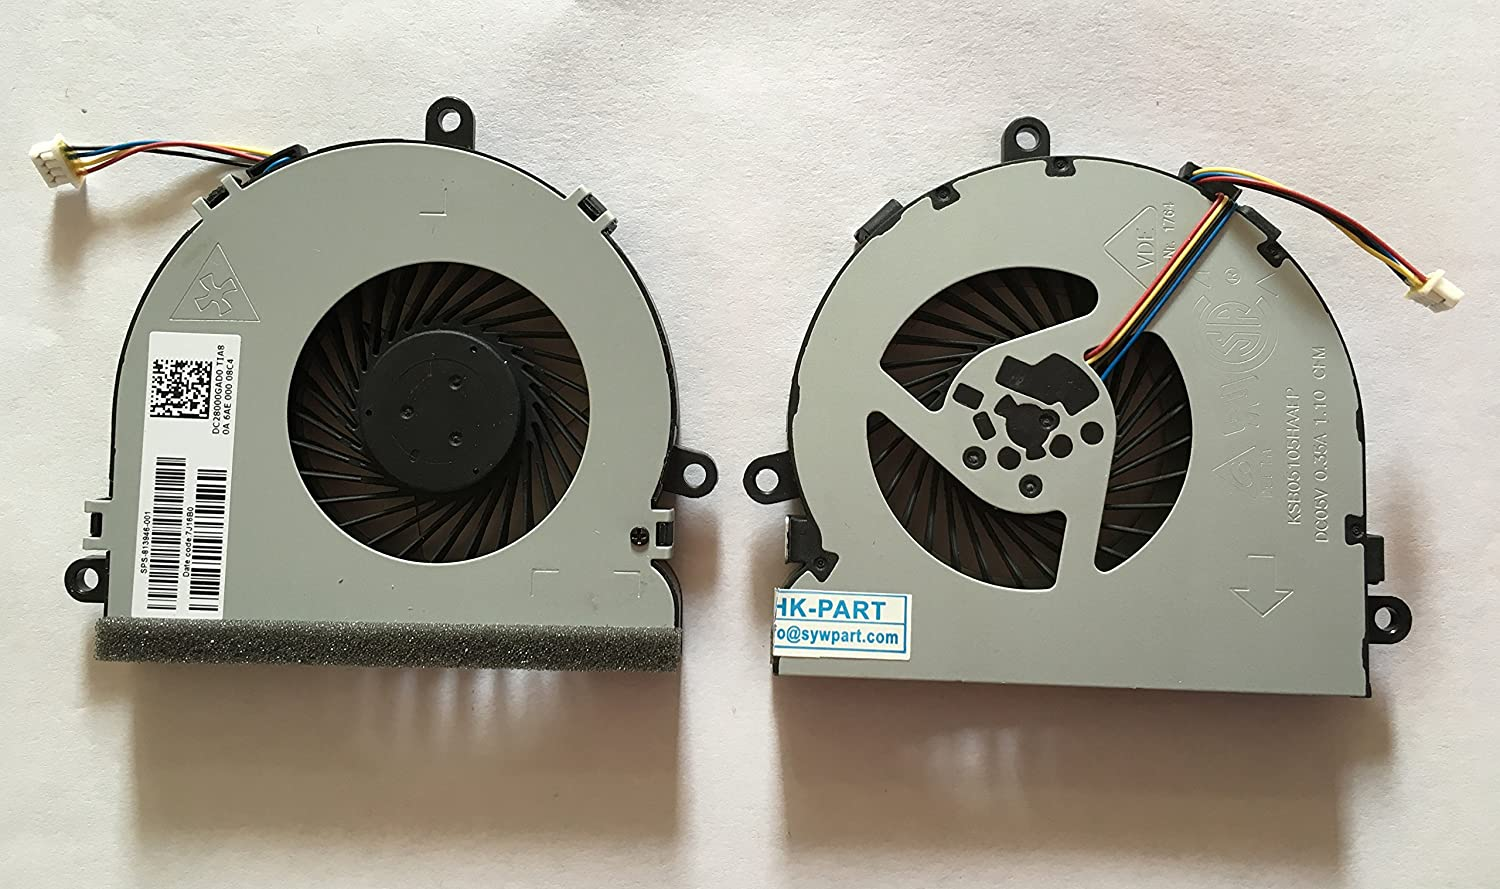 HK-Part Replacement Fan for HP 250 G5 250G5 255G5 255 G5 TPN-C129 15-AY 15-BA 15-BS 15-BW CPU Cooling Fan 4-Pin 4-Wire DC5V